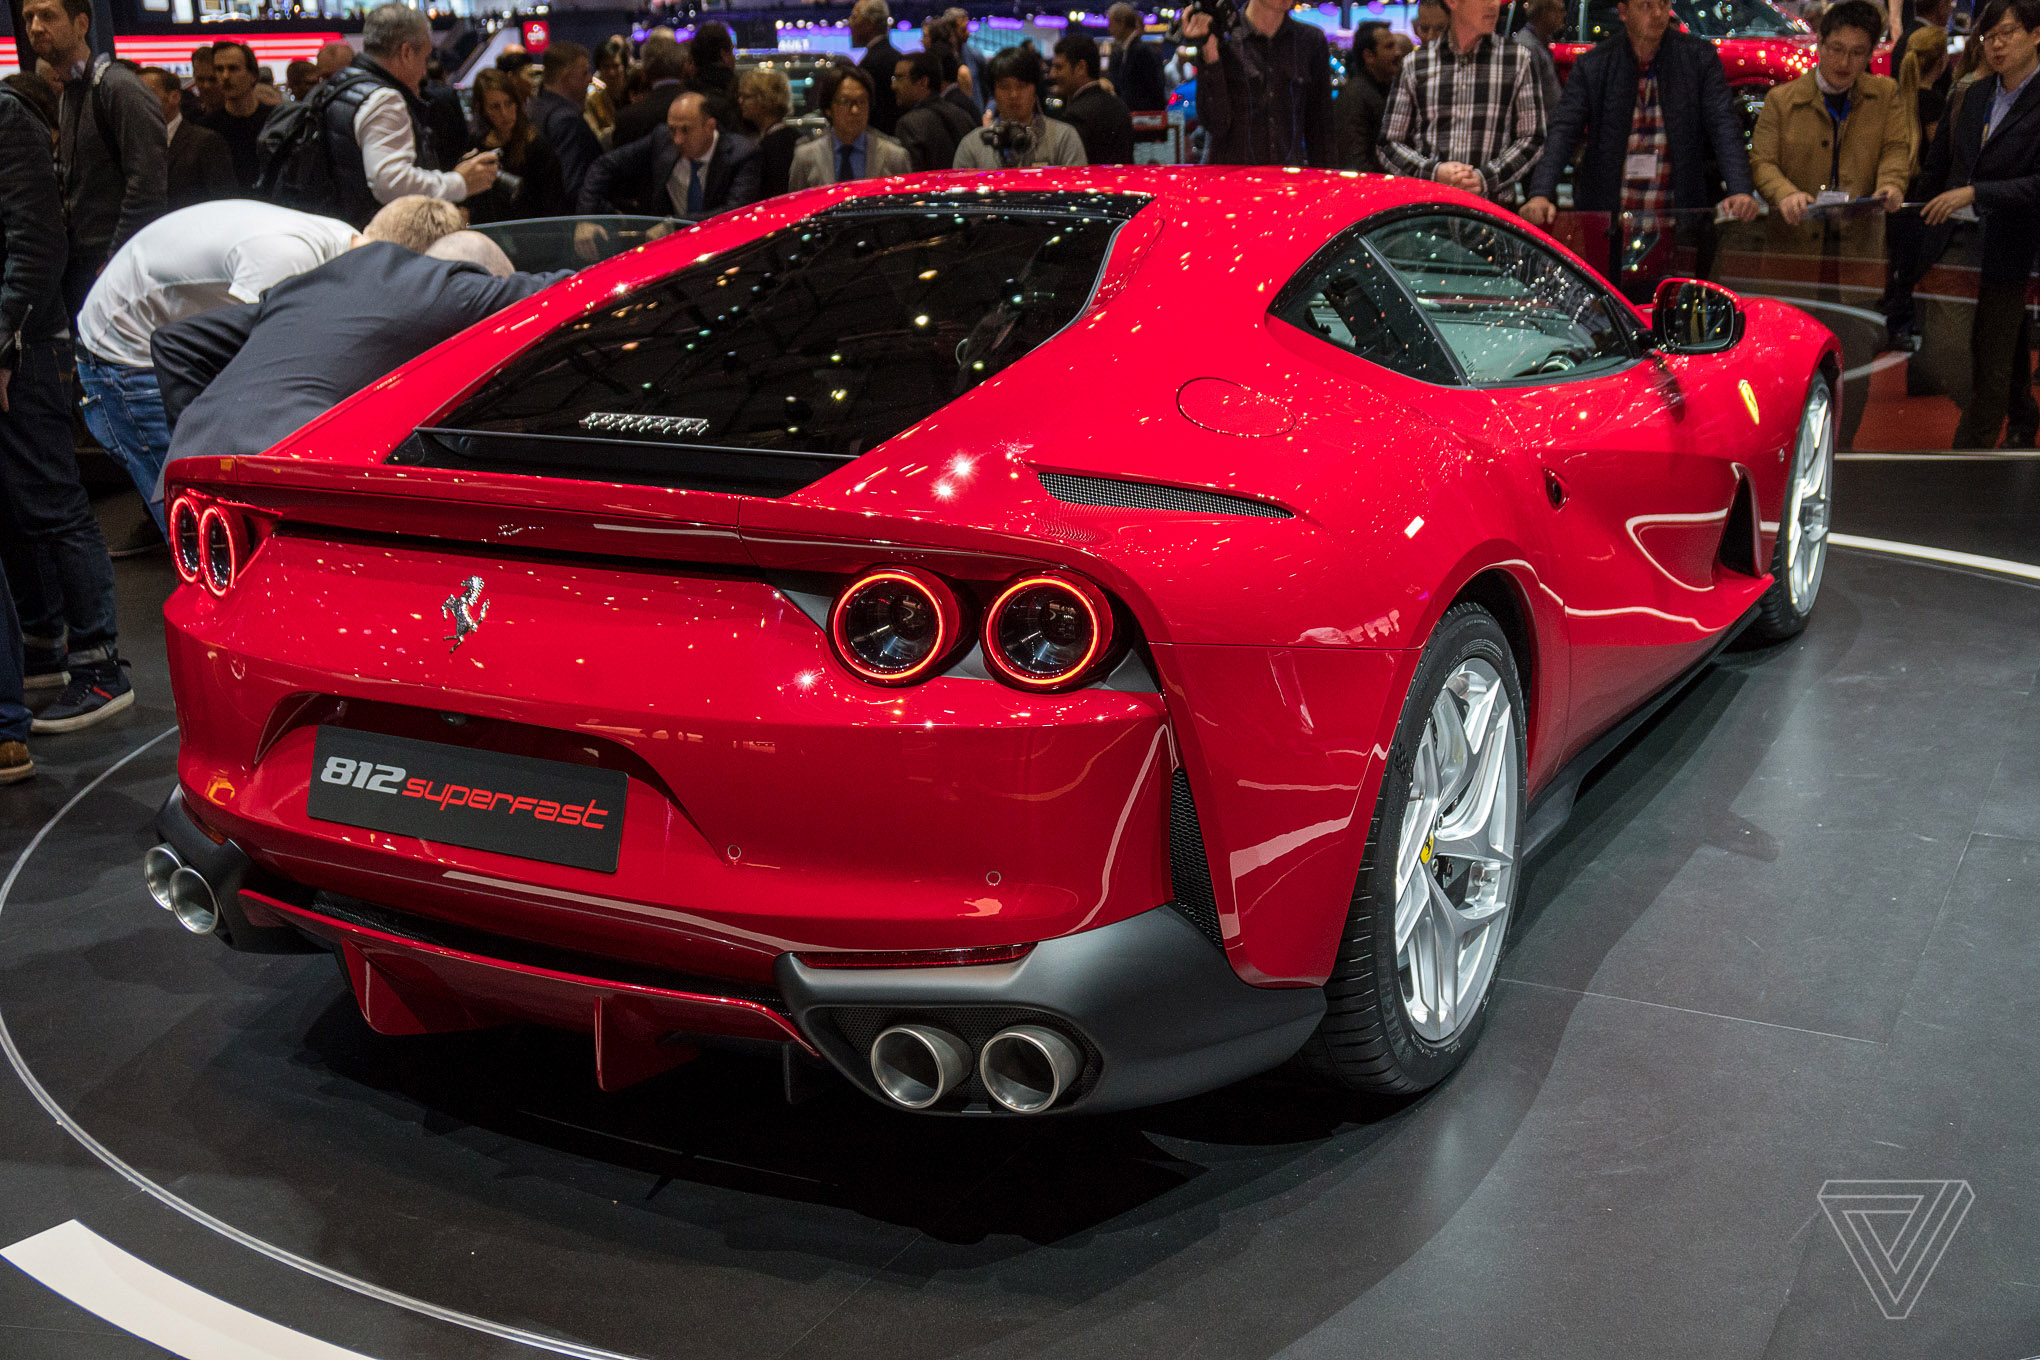 Ferrari 812 Superfast Rear Profile